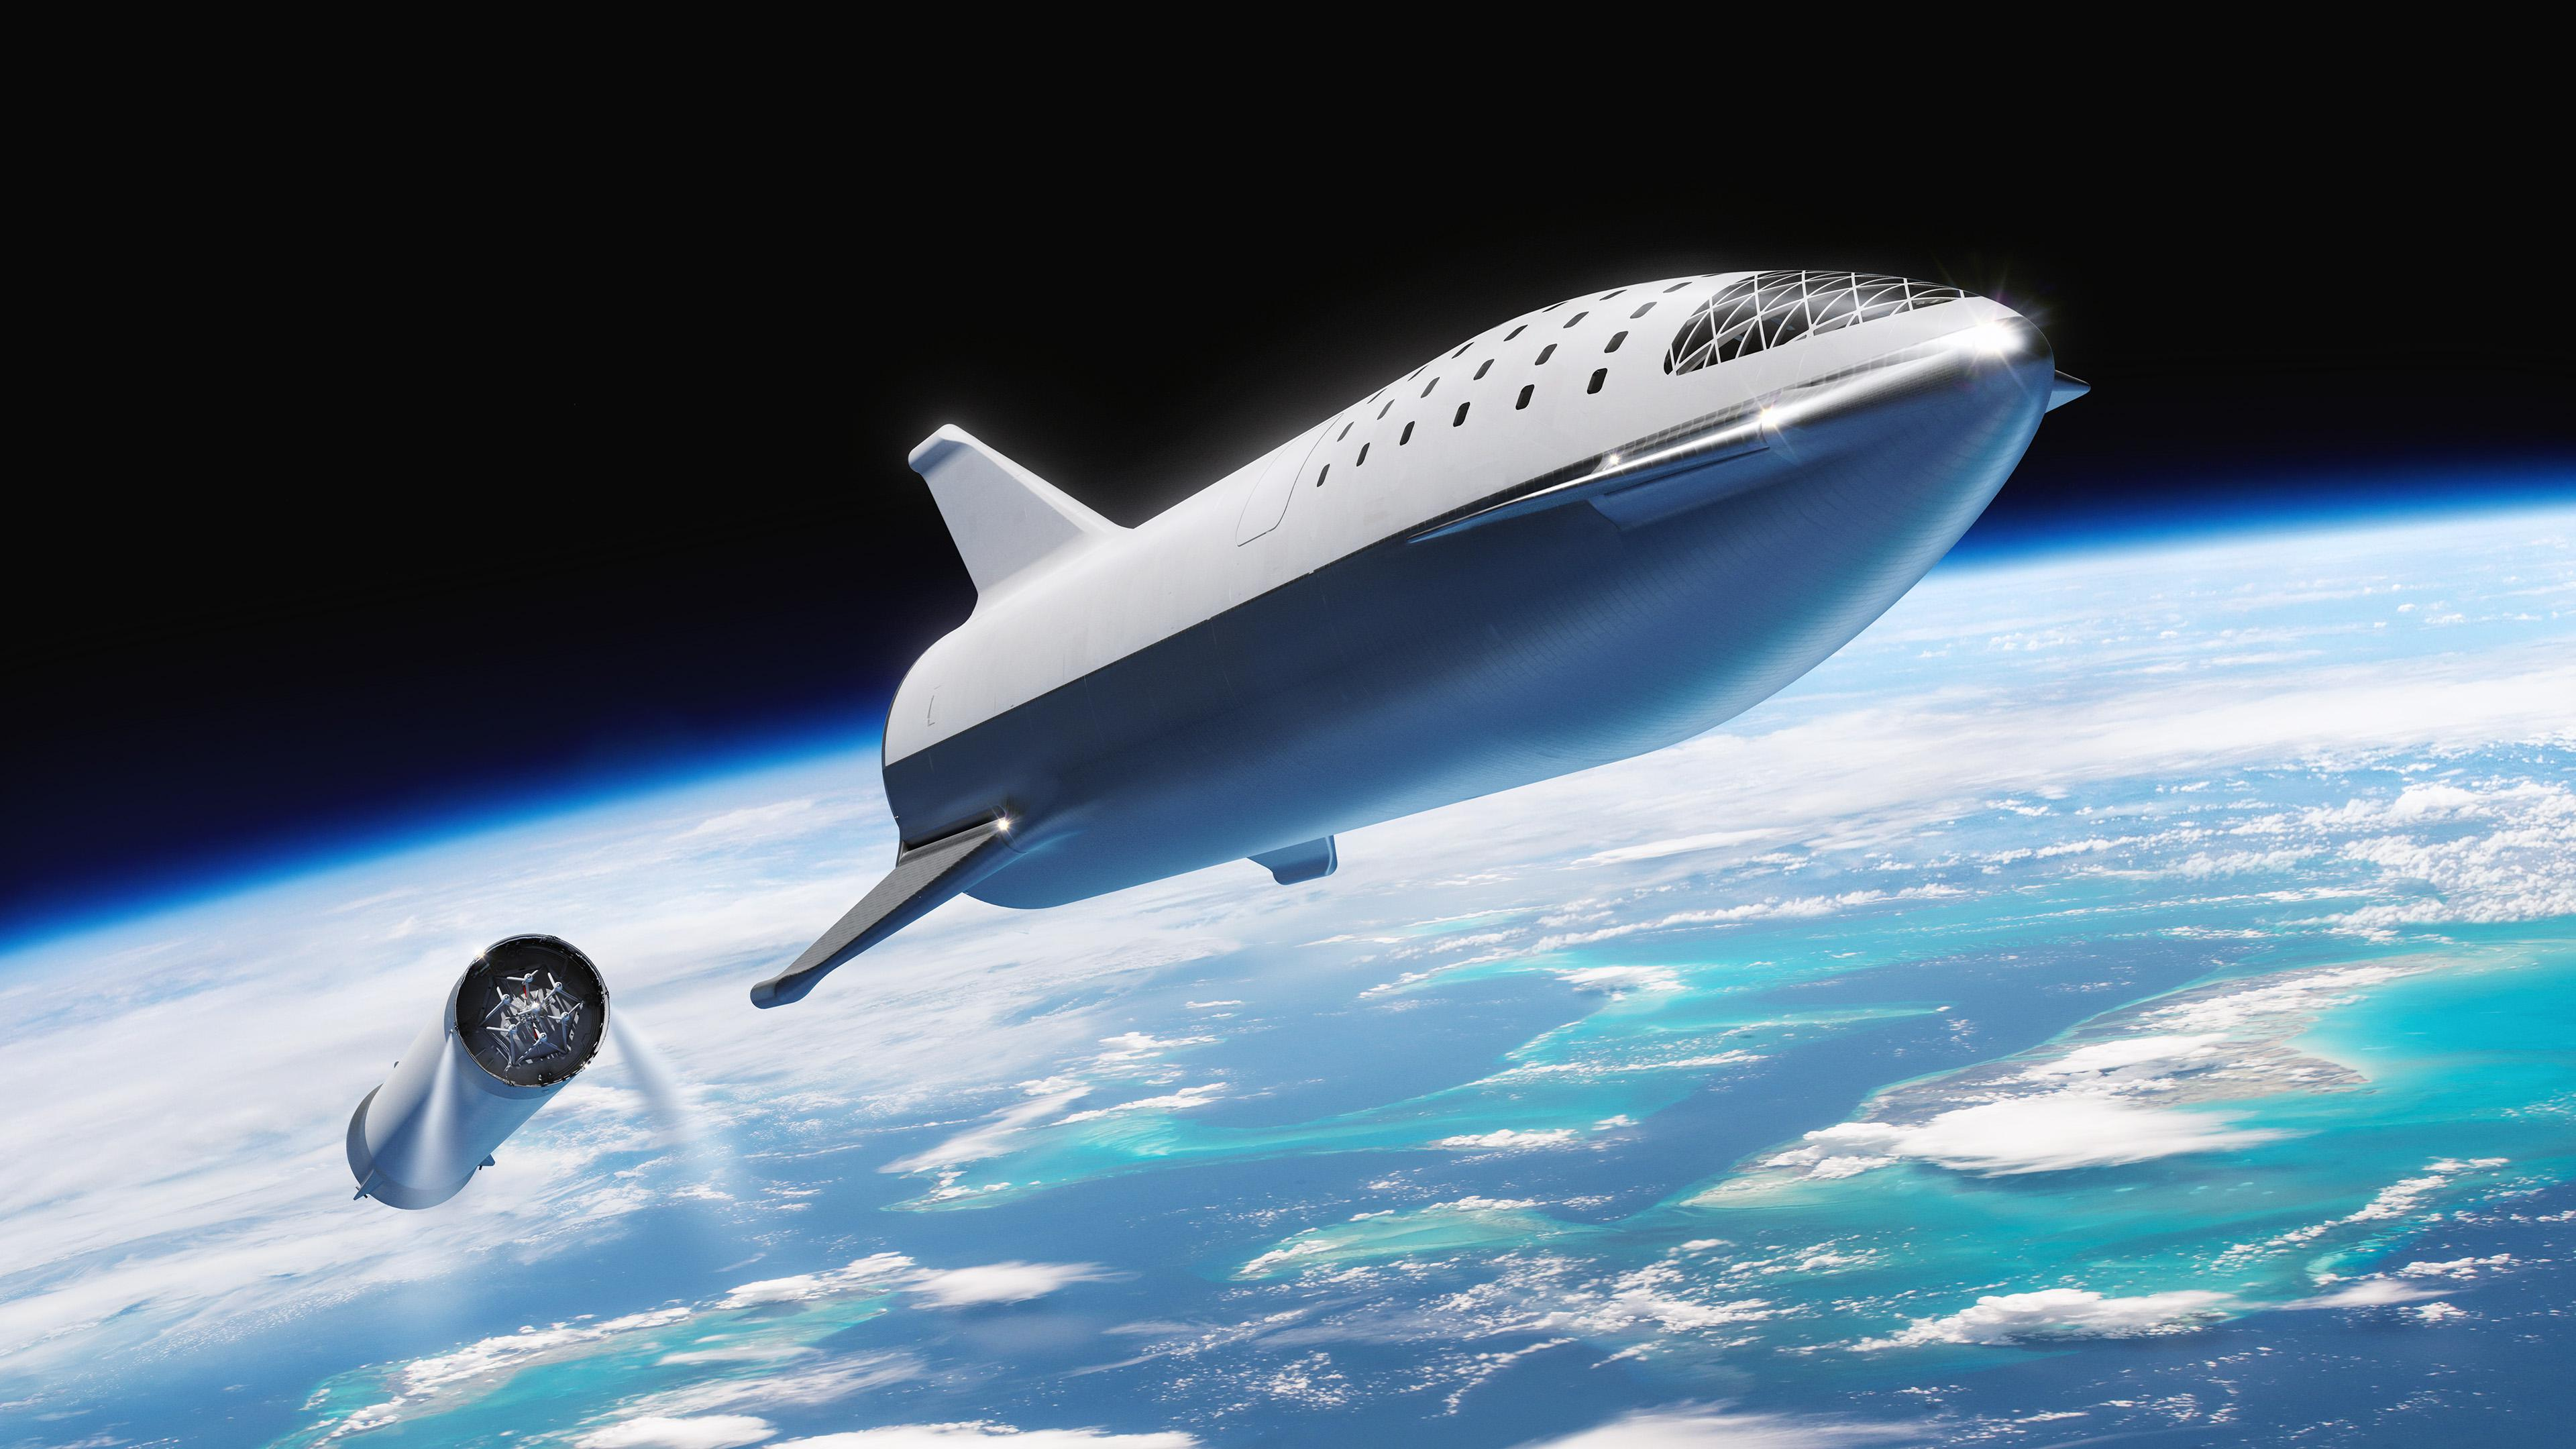 Spacex Wants To Land Its Bfr Spaceships Like A Skydiver On Earth